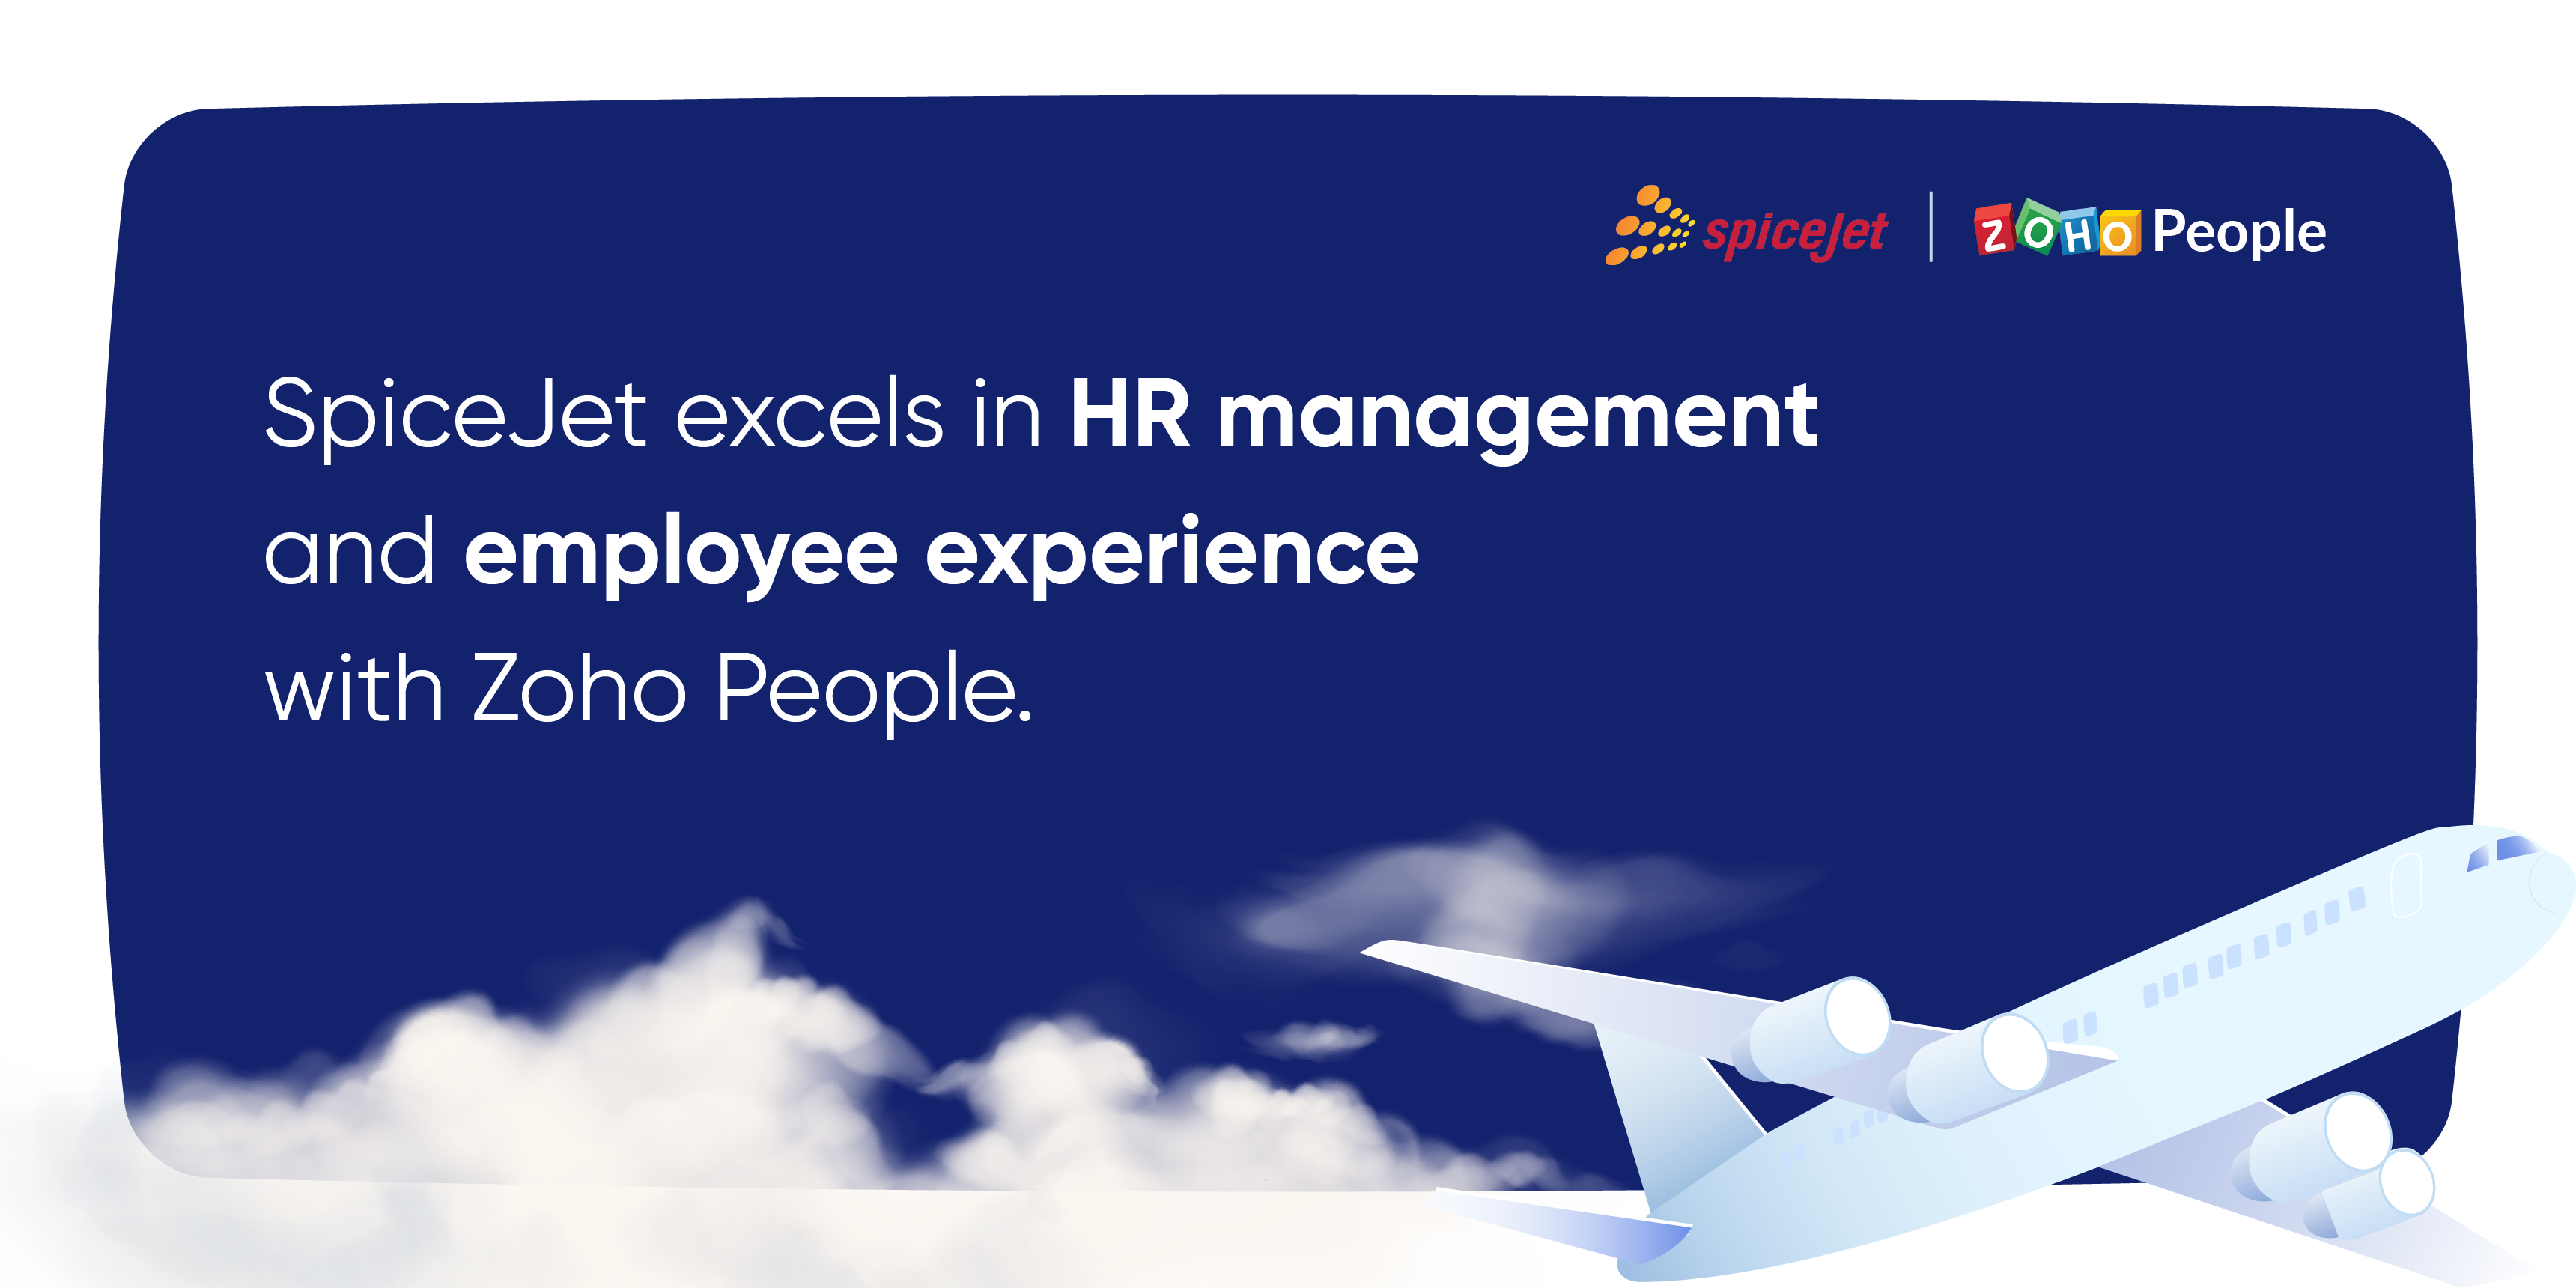 How SpiceJet improved HR management with Zoho People